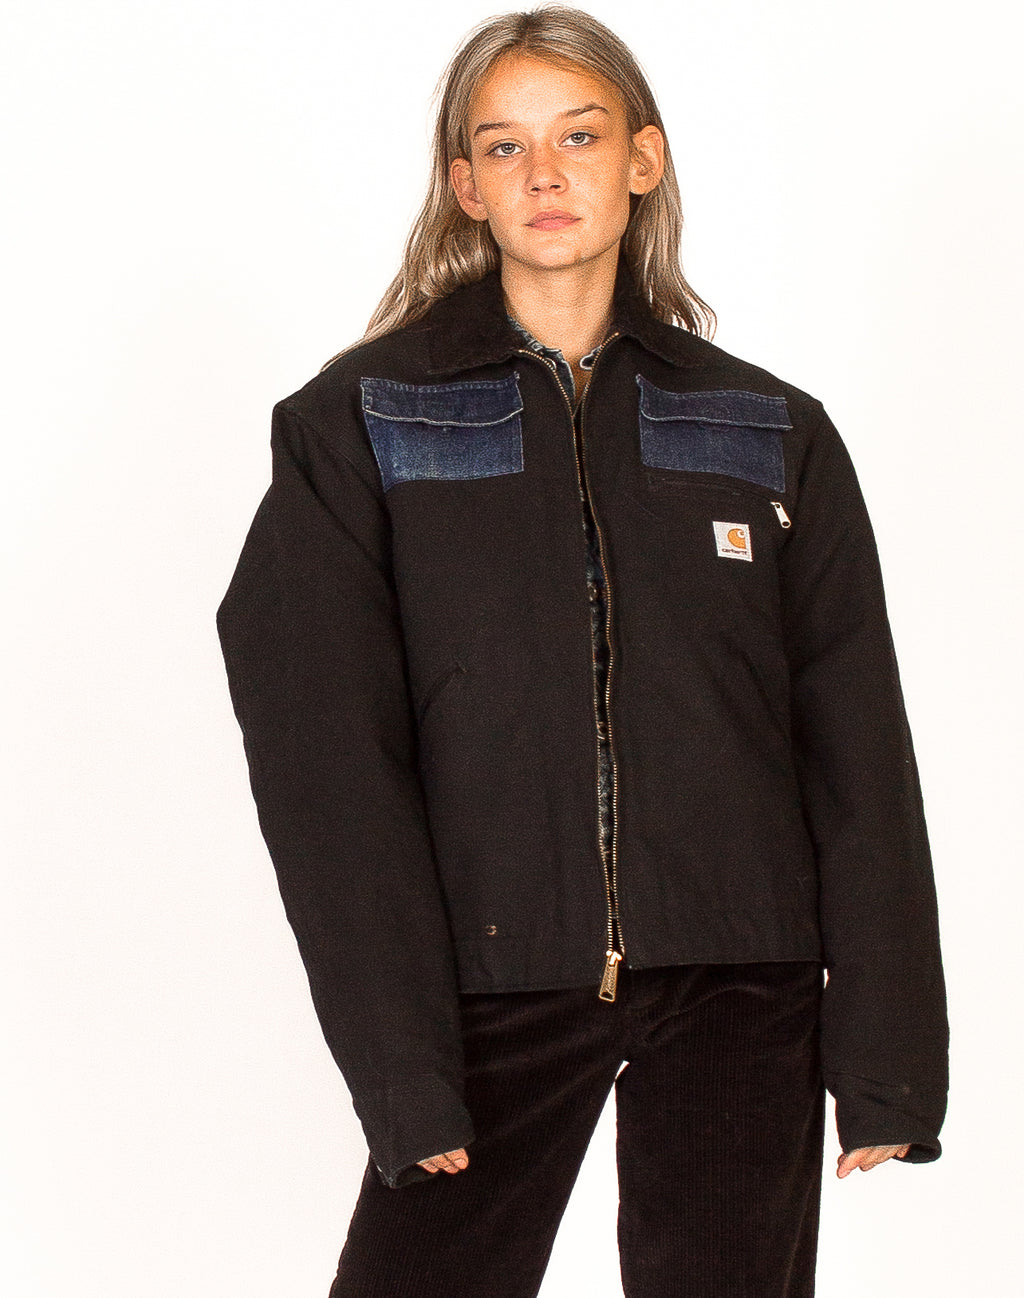 CARHARTT BLACK WORKWEAR JACKET